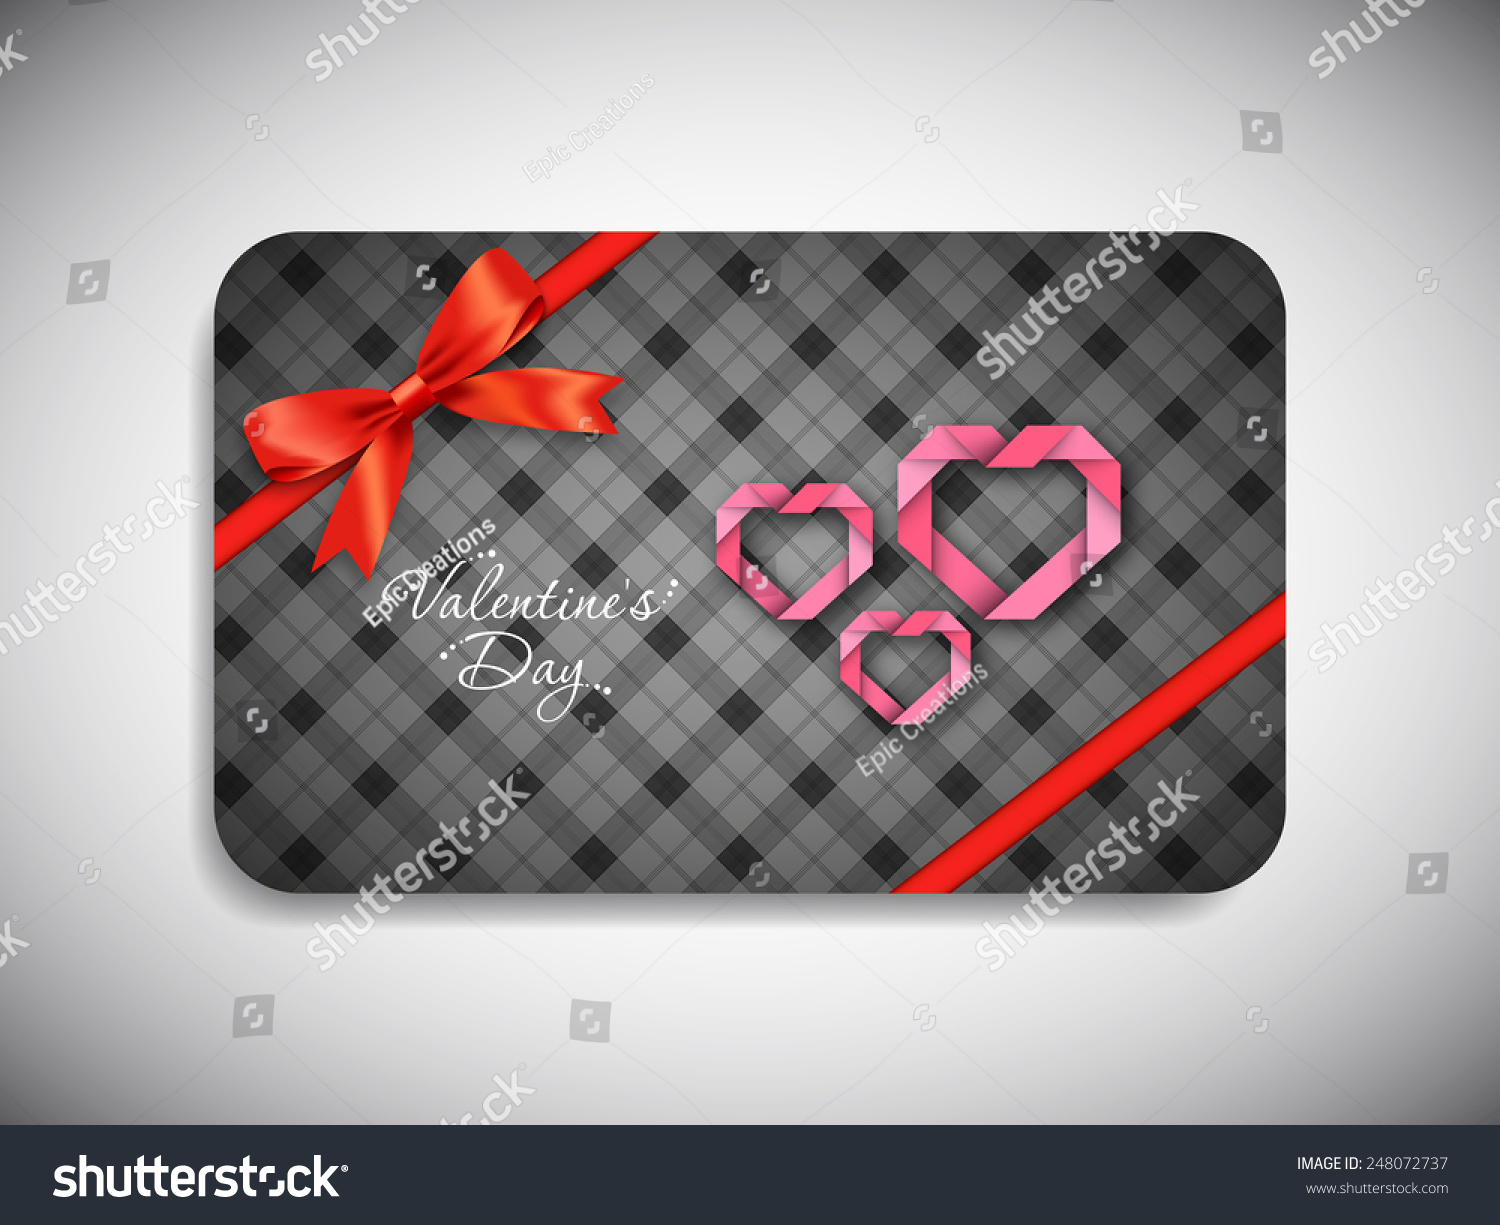 Gift card valentines day beautiful heart gift card of valentines day with beautiful heart design negle Gallery